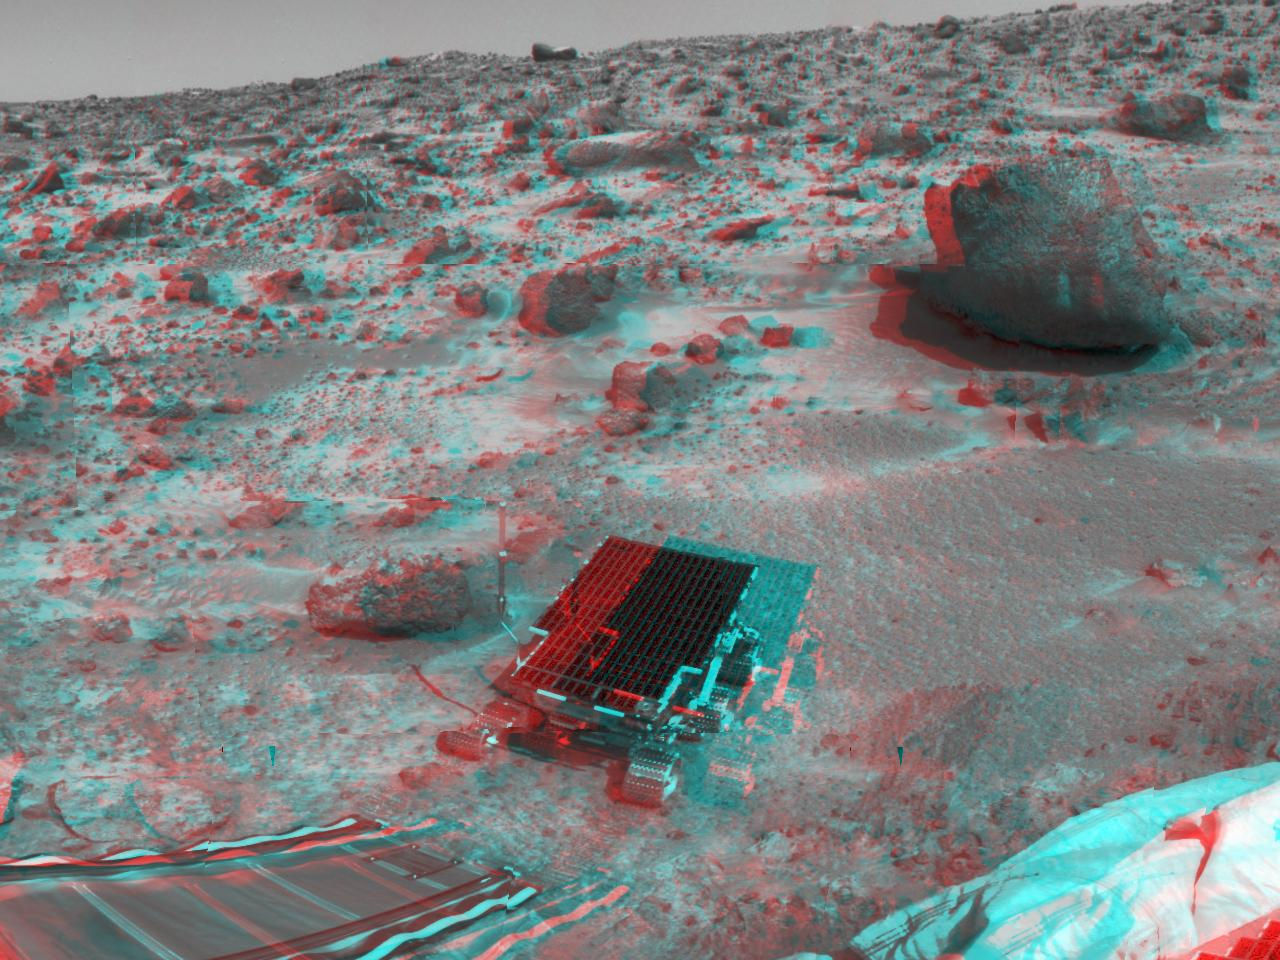 nasa stl 3d worm - photo #34